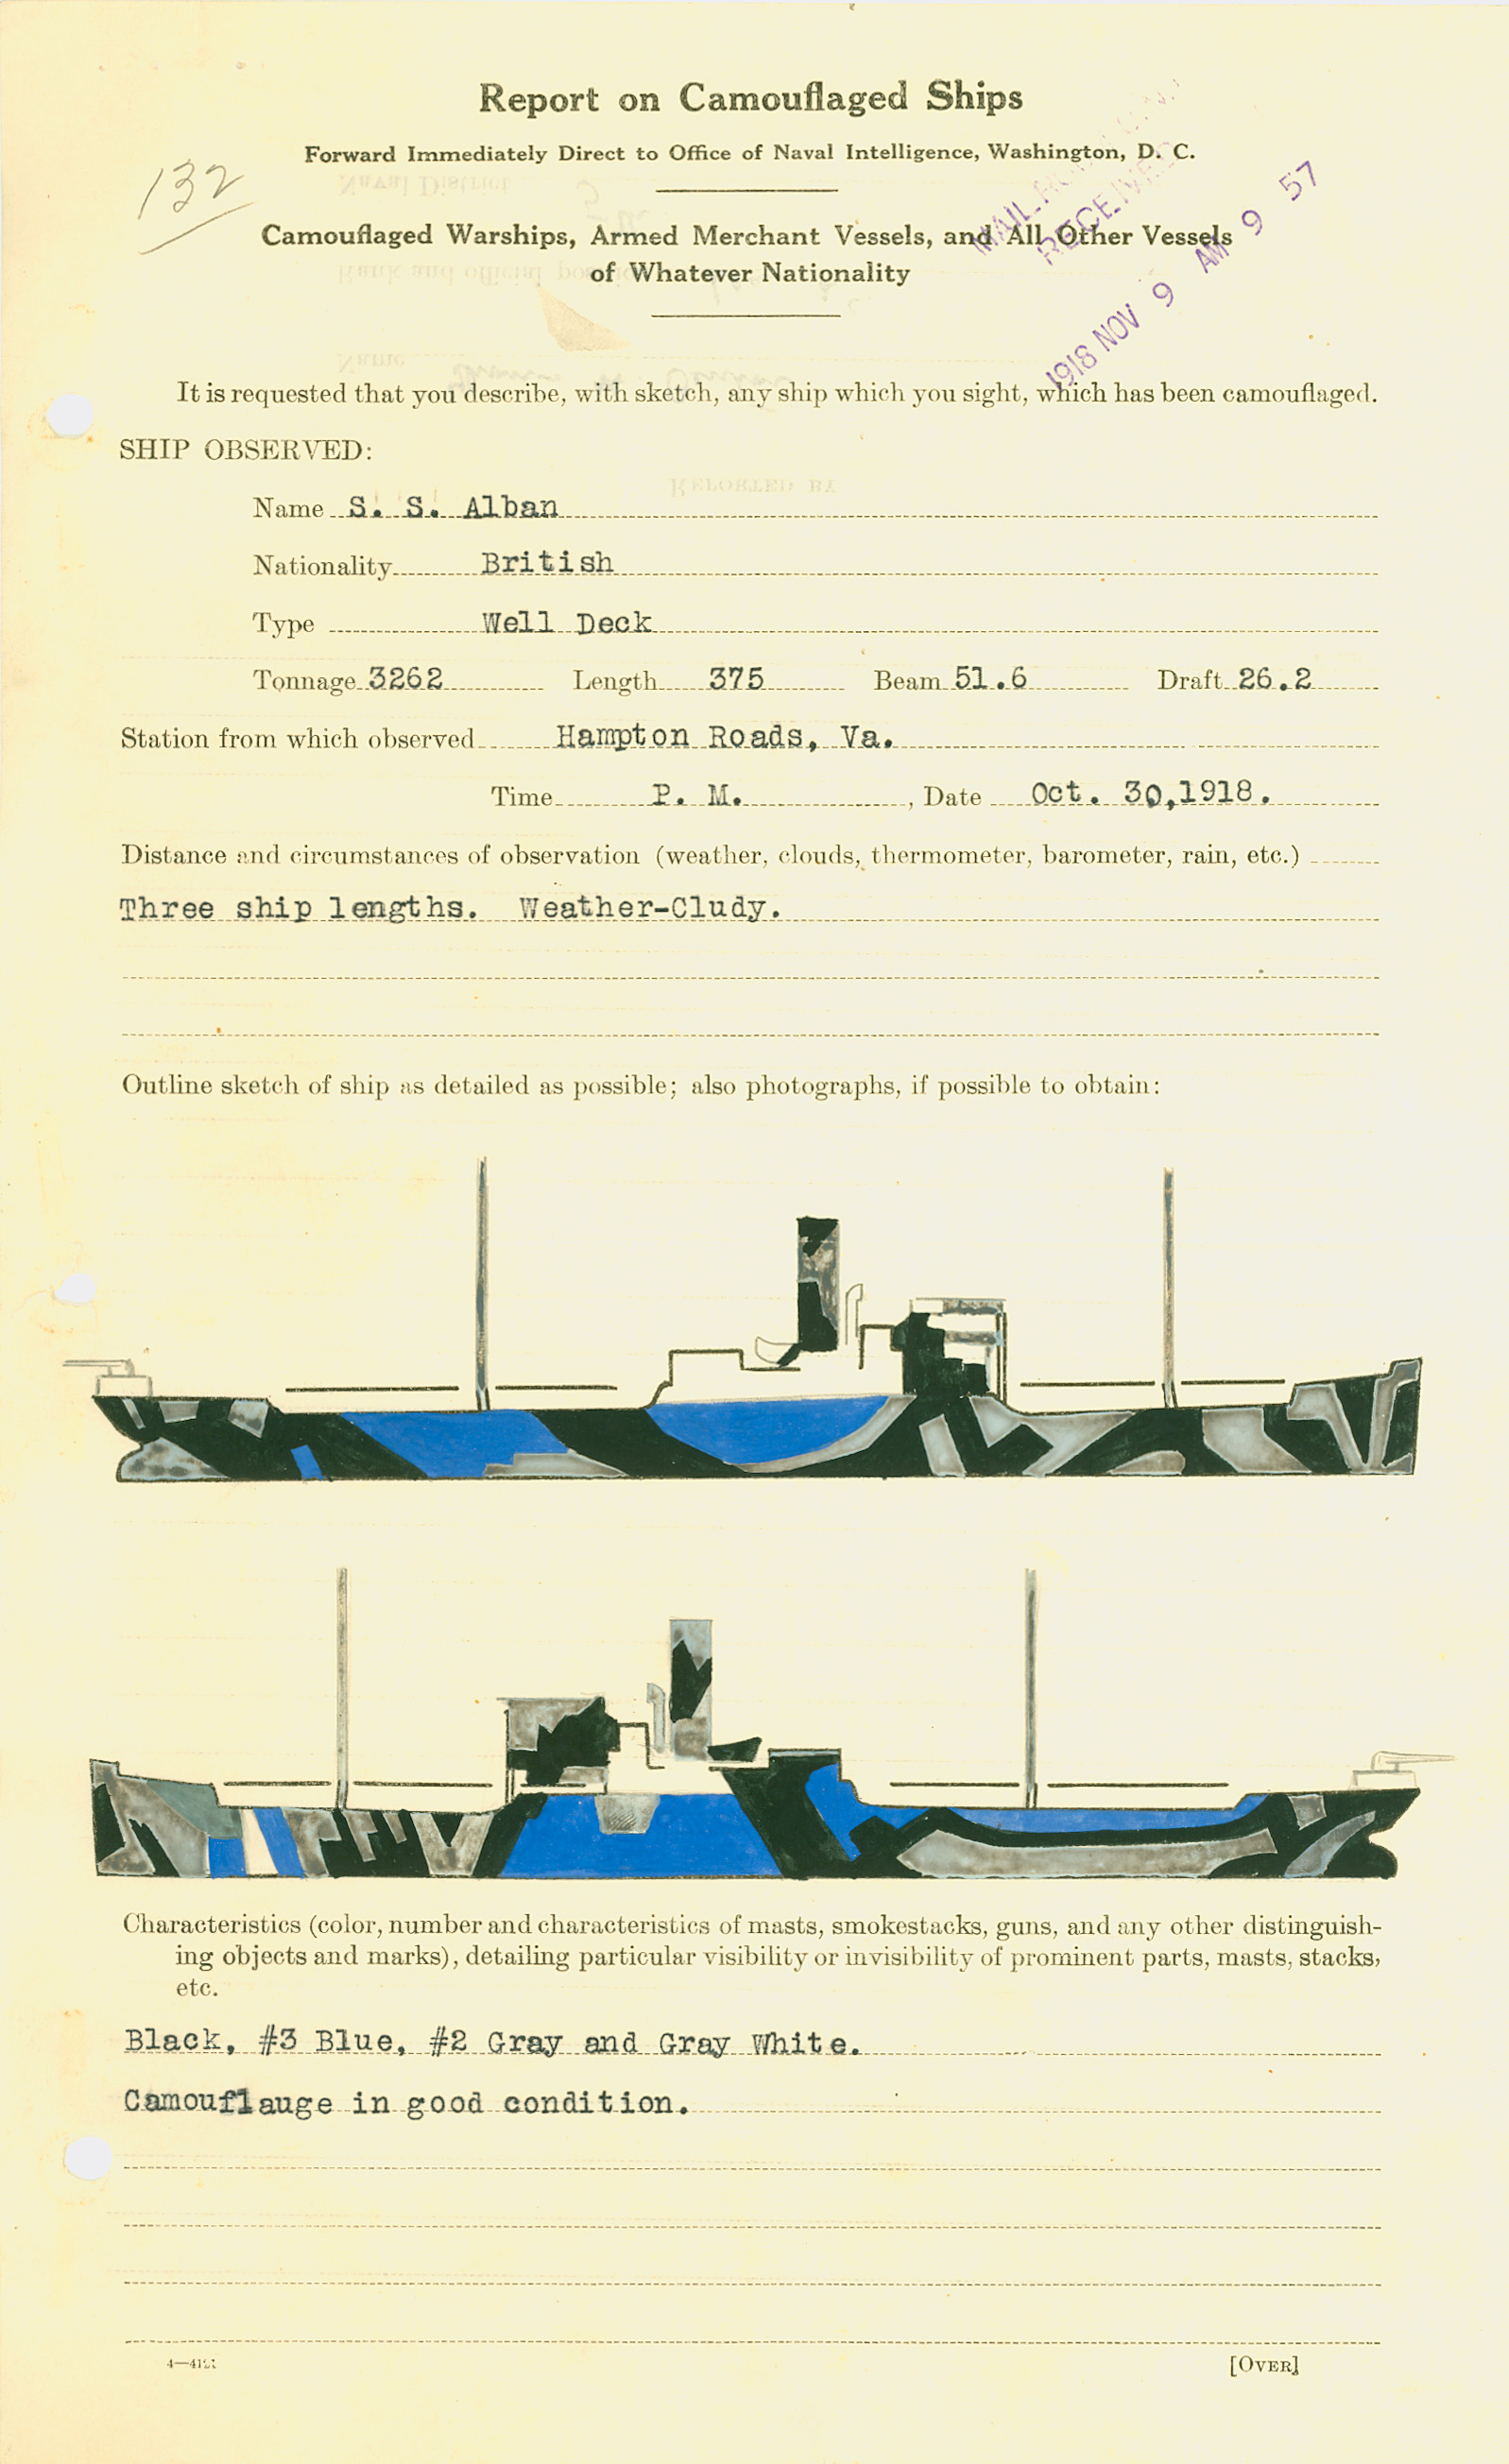 parts of a submarine diagram craftsman weedeater fuel line best wiring library file s alban camouflage by thomas hart benton jpg